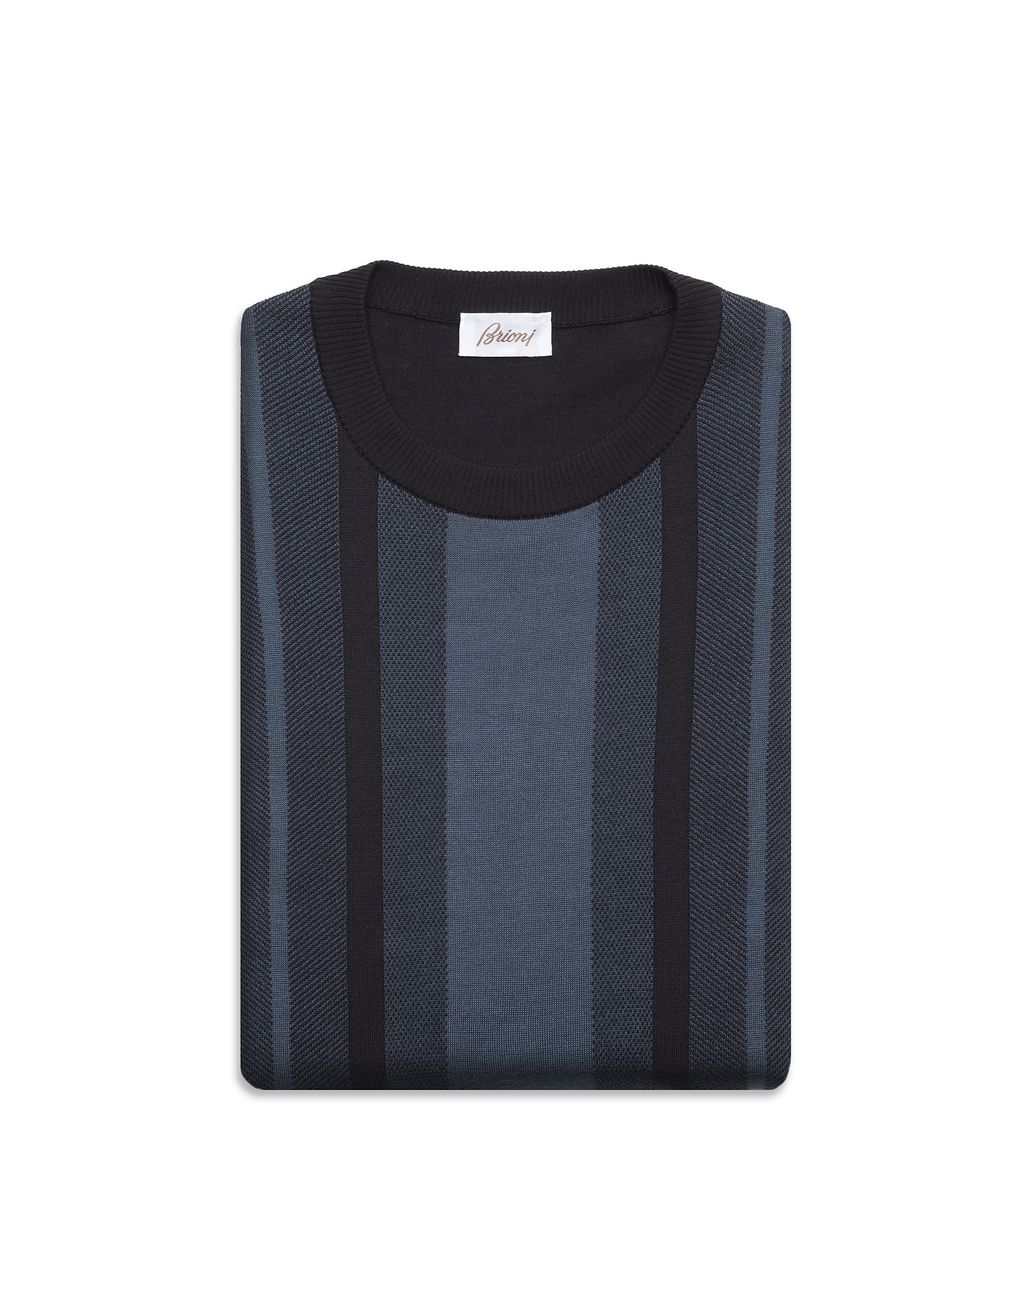 BRIONI Navy Blue Cotton and Silk Striped Sweater with Bicolour Trims Knitwear [*** pickupInStoreShippingNotGuaranteed_info ***] e